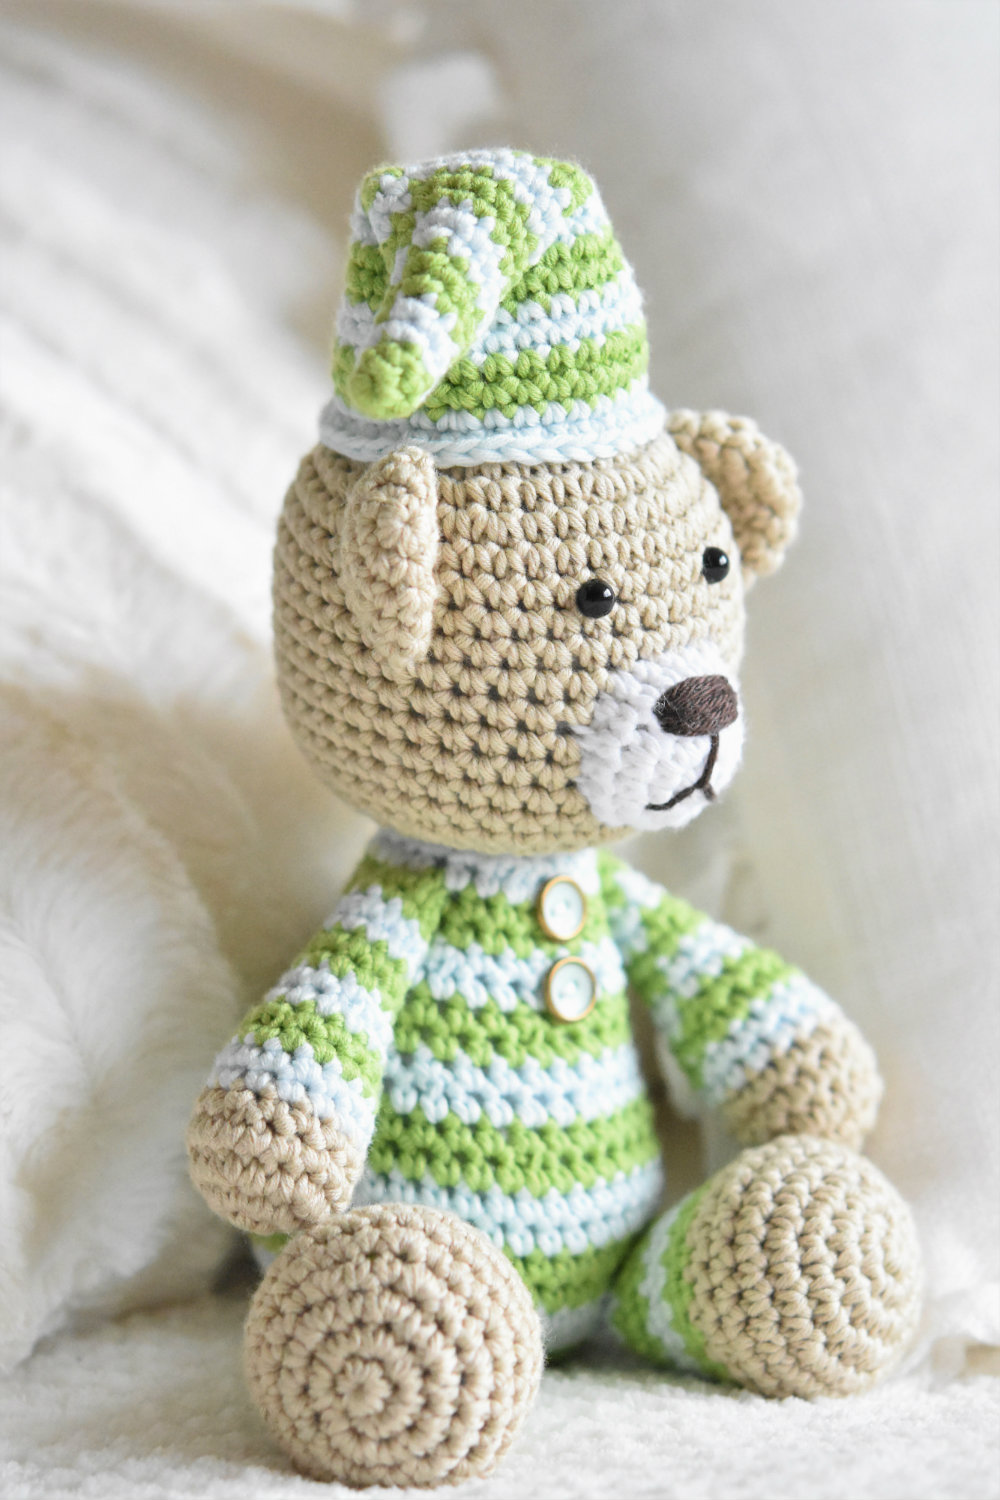 Amigurumi Pajamas Teddy Crochet Teddy Bear Pattern